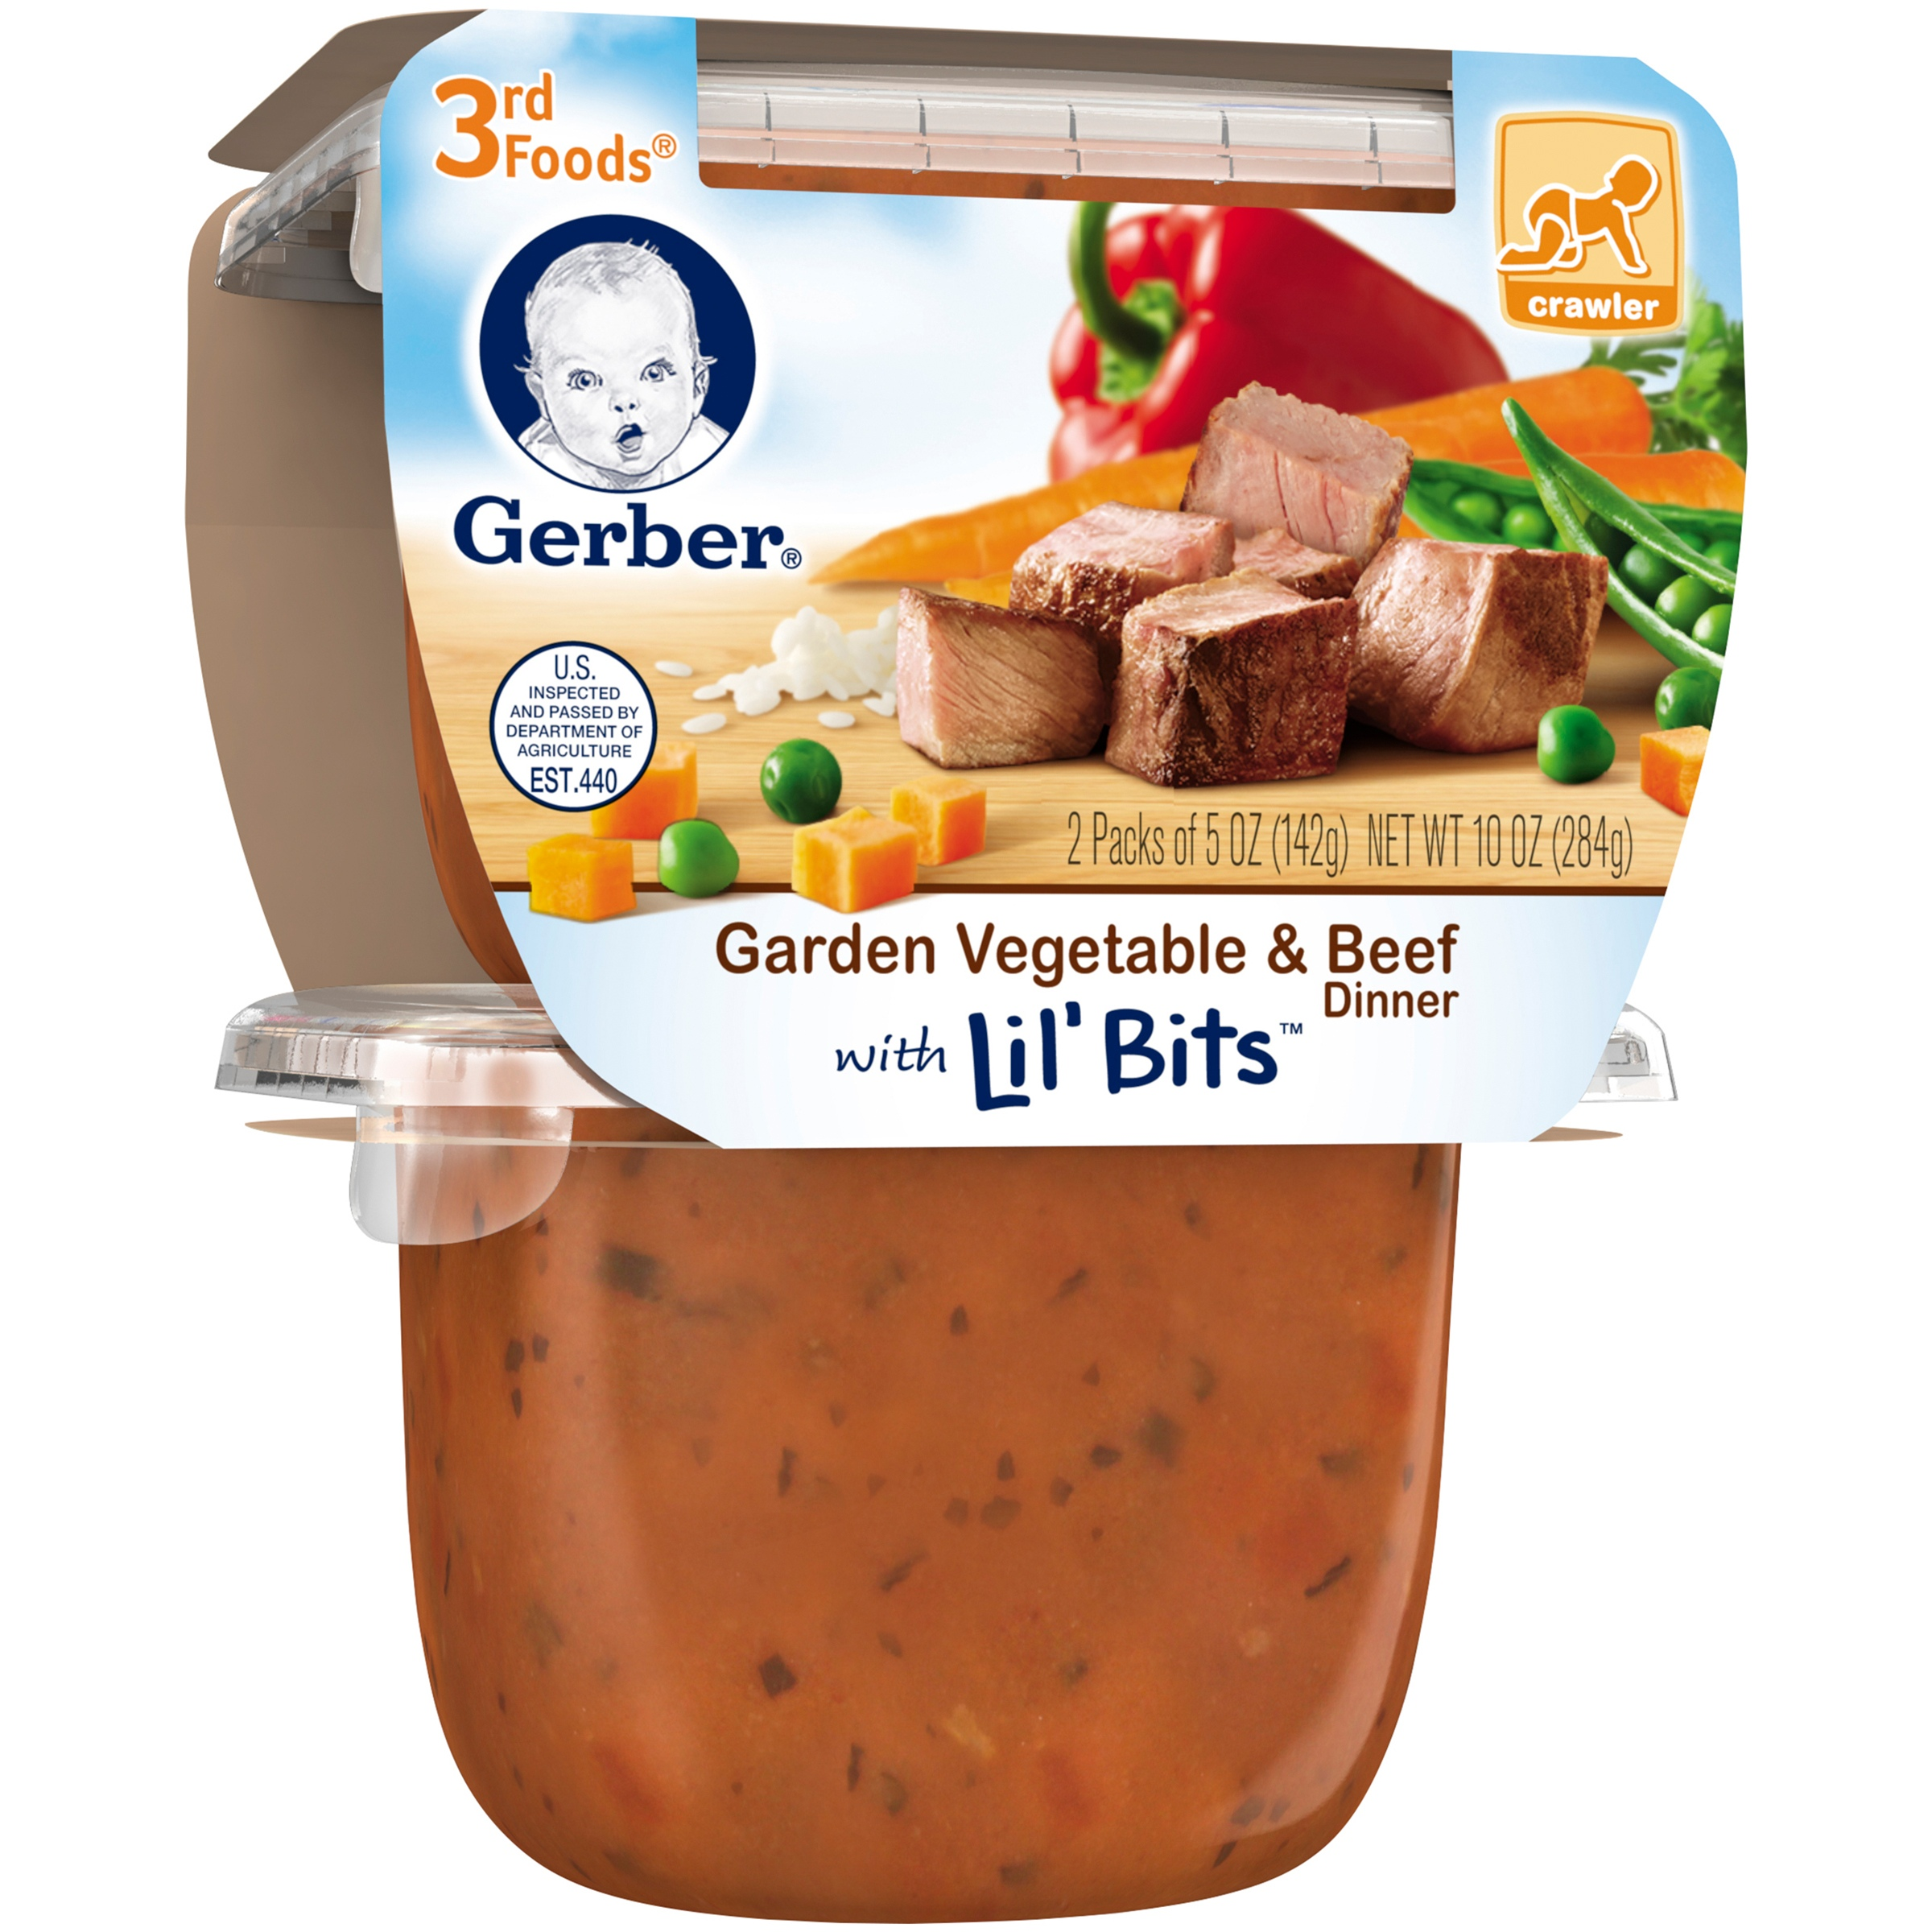 Gerber® 3rd Foods® Garden Vegetable & Beef Dinner with Lil' Bits™ Pureed Dinner, 5 oz, 2 count